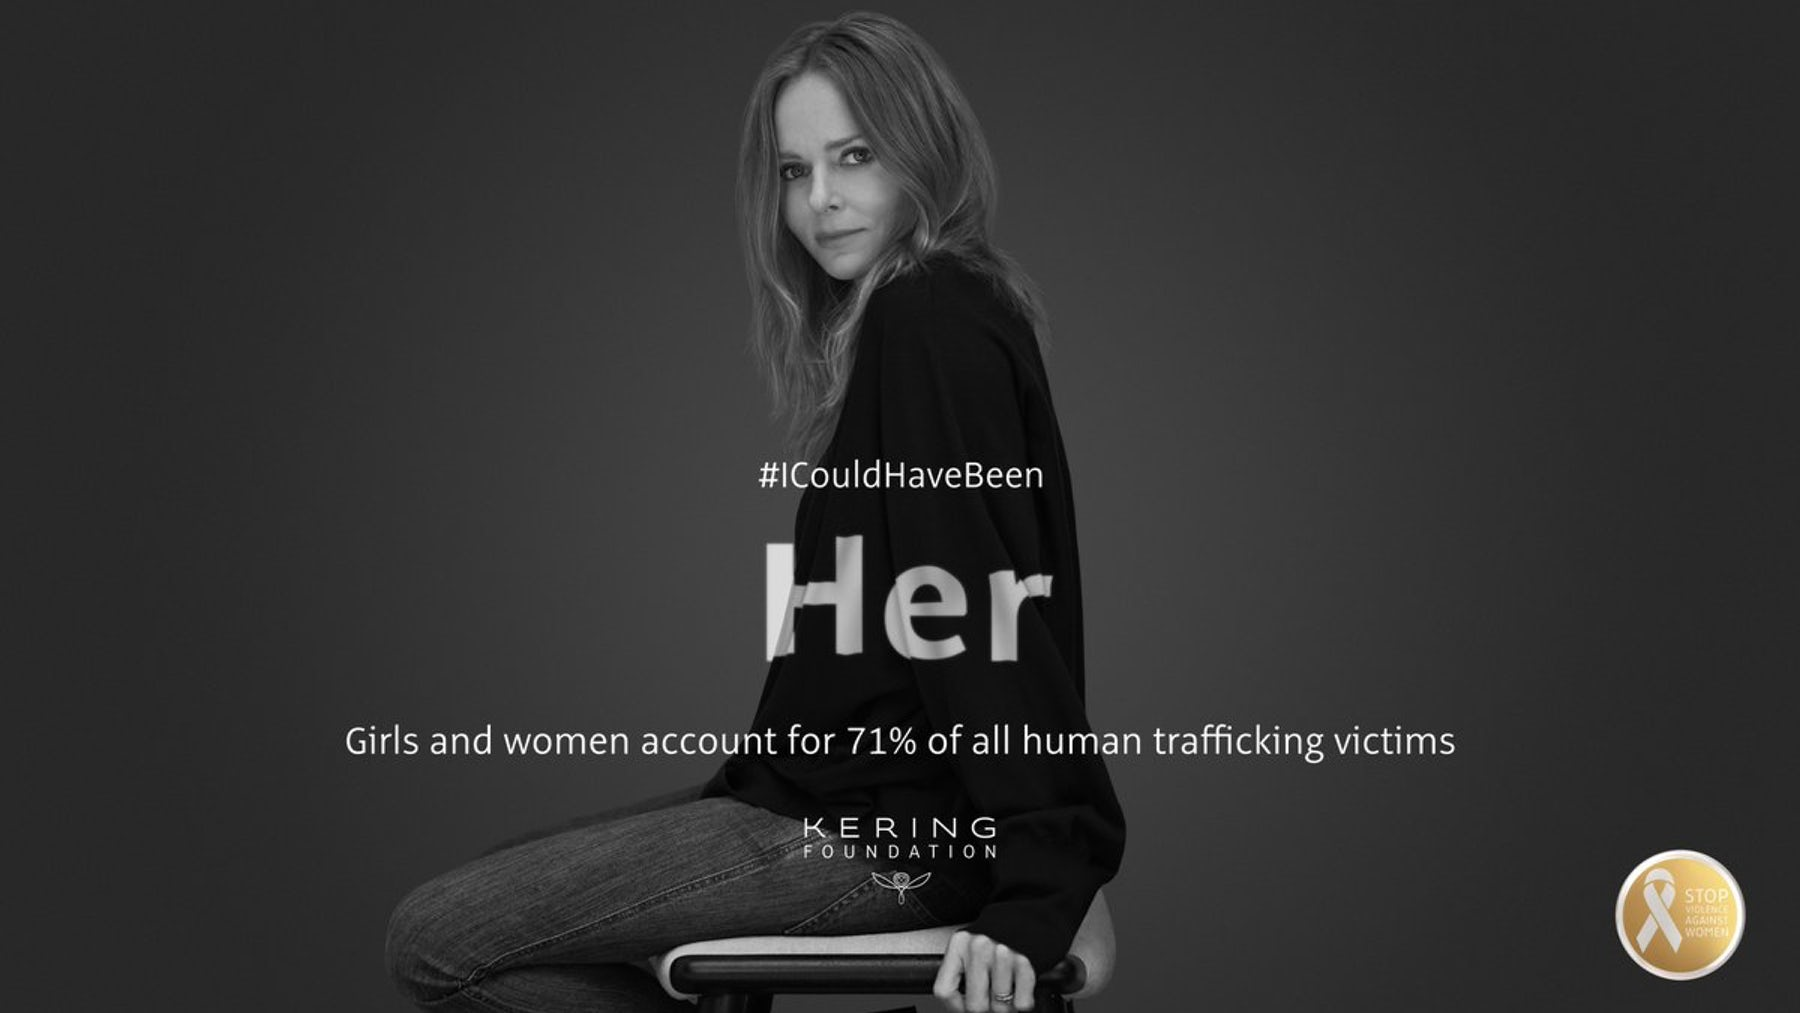 Stella McCartney in Kering's #ICouldHaveBeen campaign | Source: Facebook